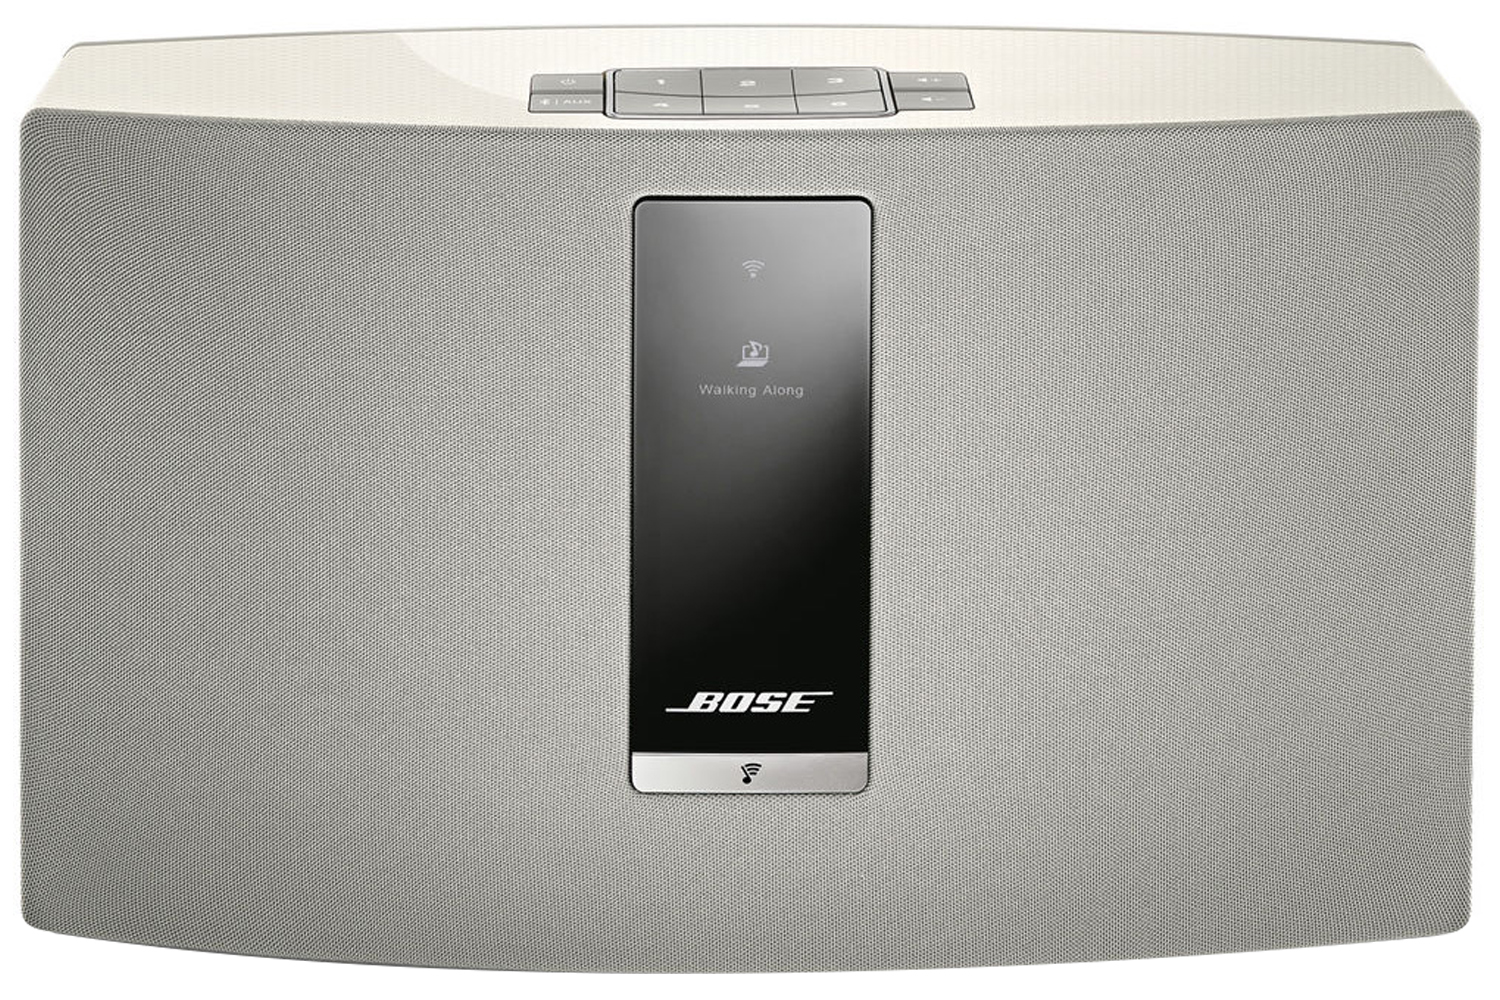 Bose Acoustimass 300 Wireless Bass Module Ireland Soundtouch With Plus Virtually Invisible 20 Bluetooth Speaker White